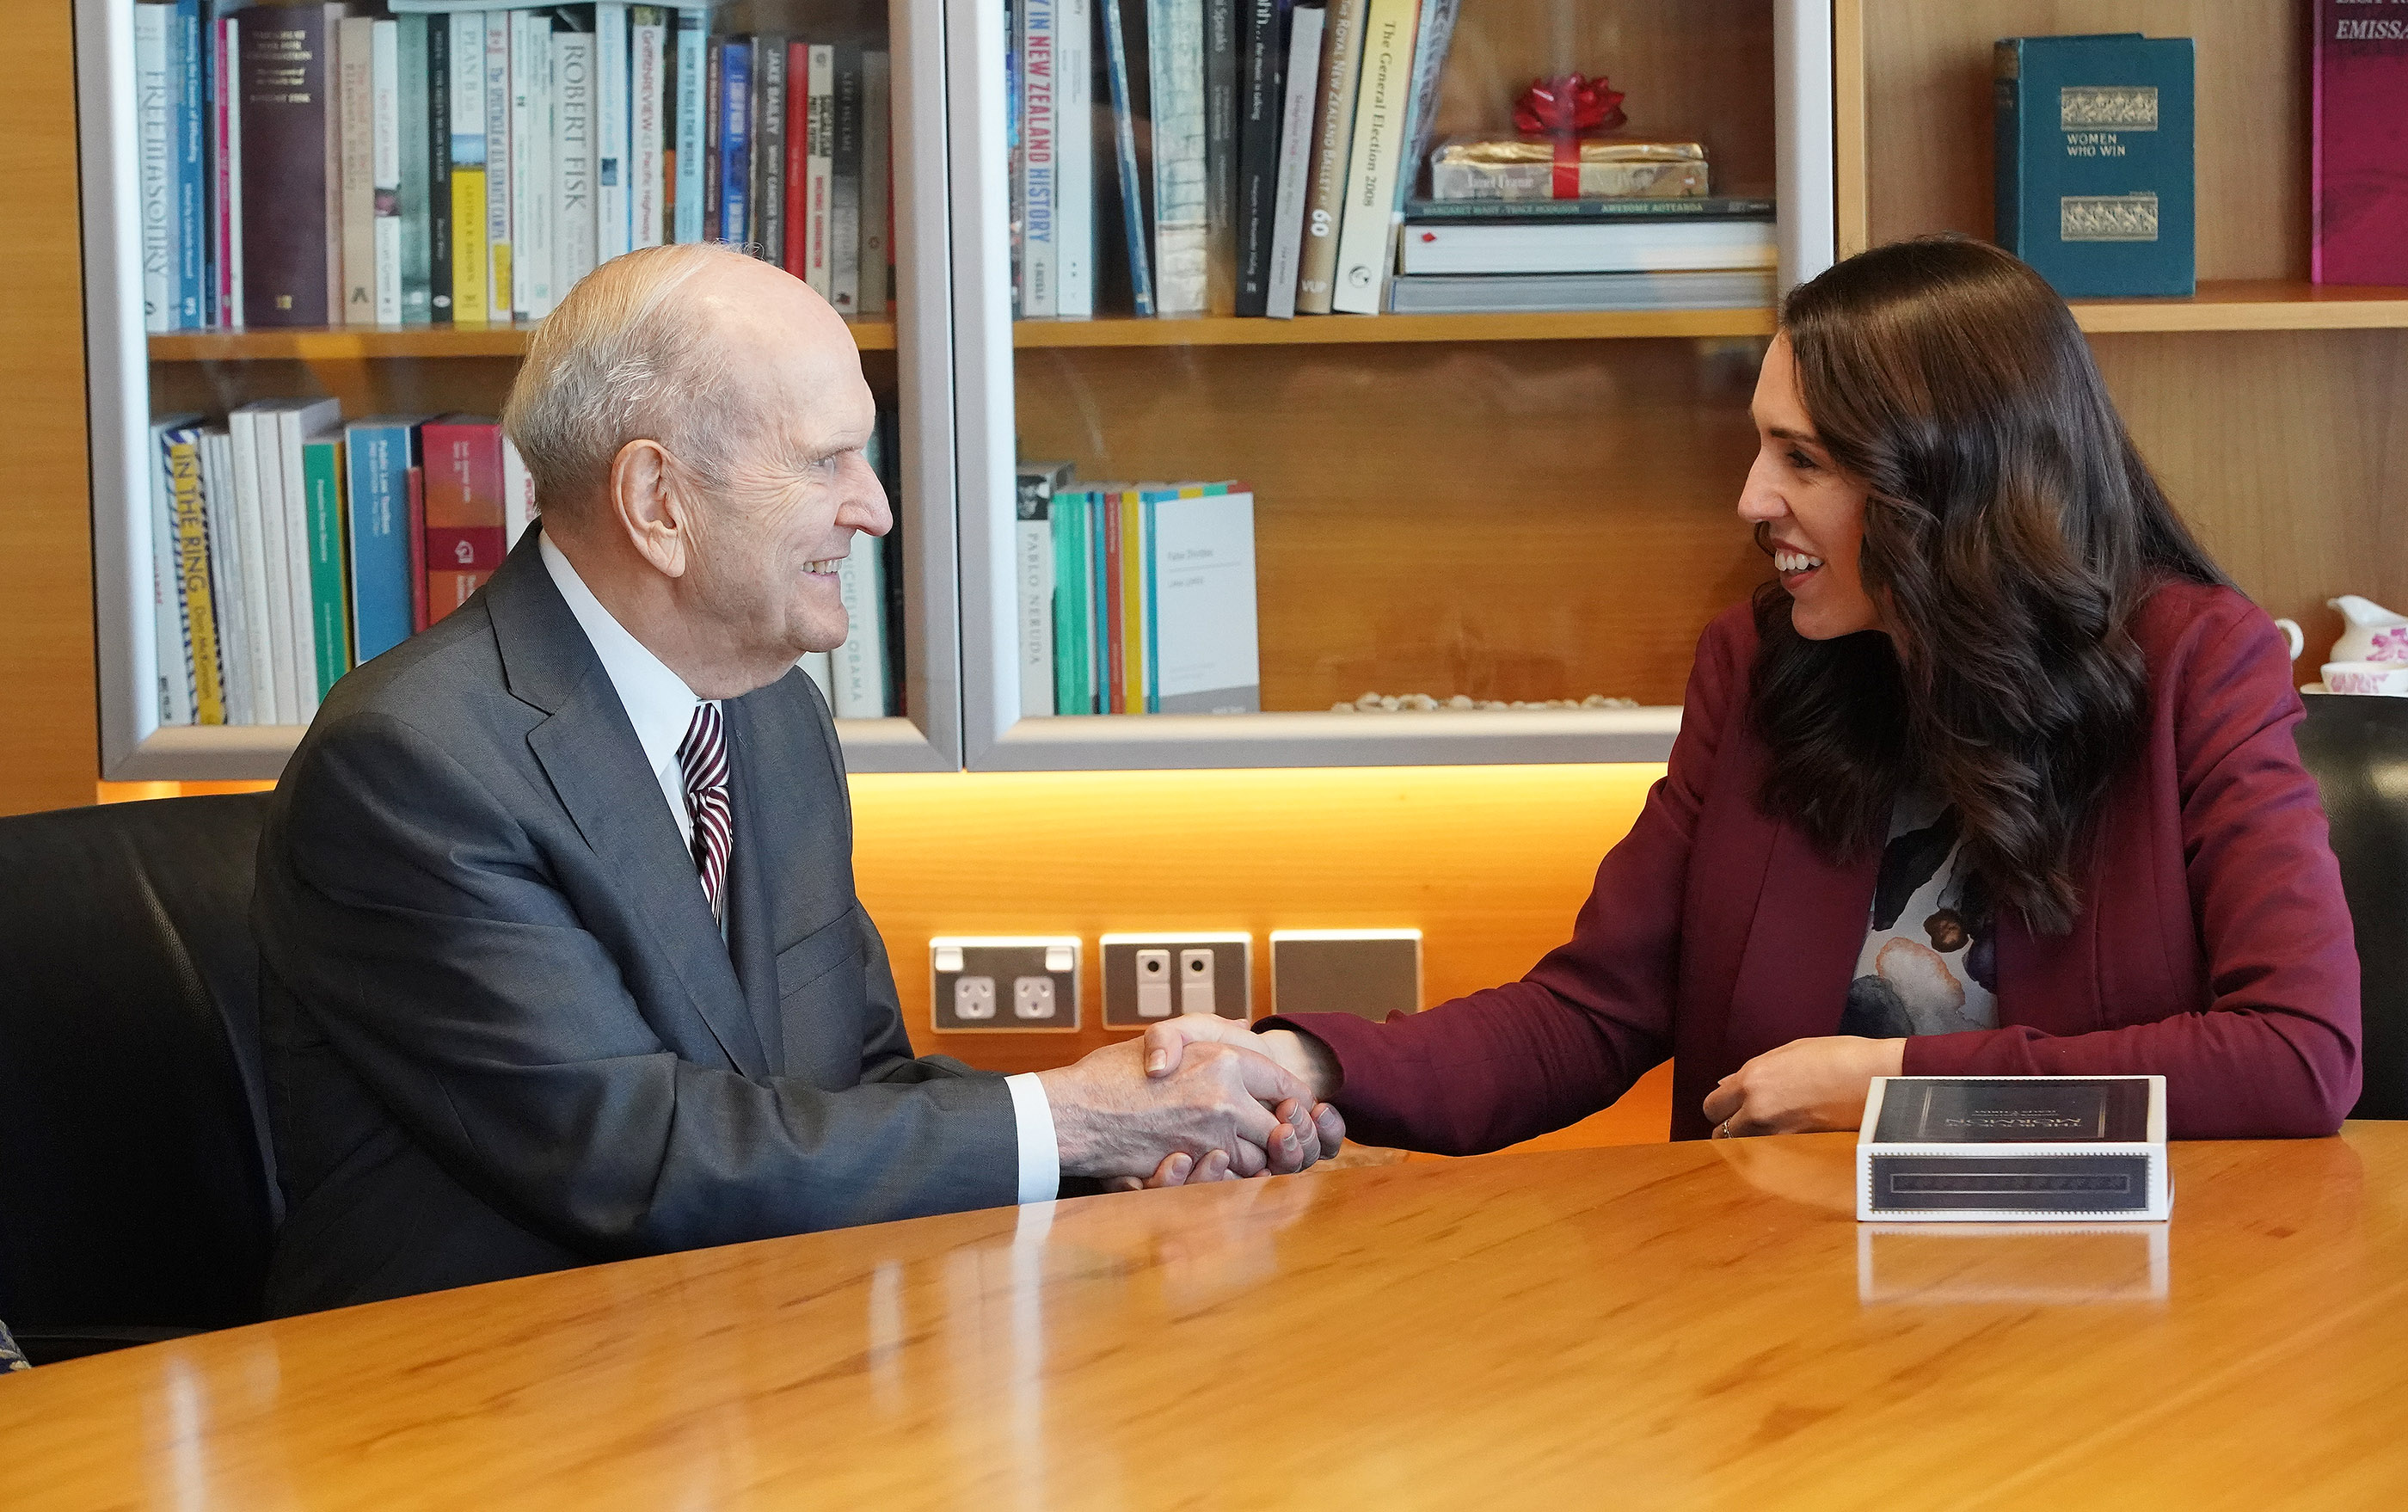 President Russell M. Nelson of The Church of Jesus Christ of Latter-day Saints meets with New Zealand Prime Minister Jacinda Ardern in Wellington, New Zealand, on Monday, May 20, 2019.